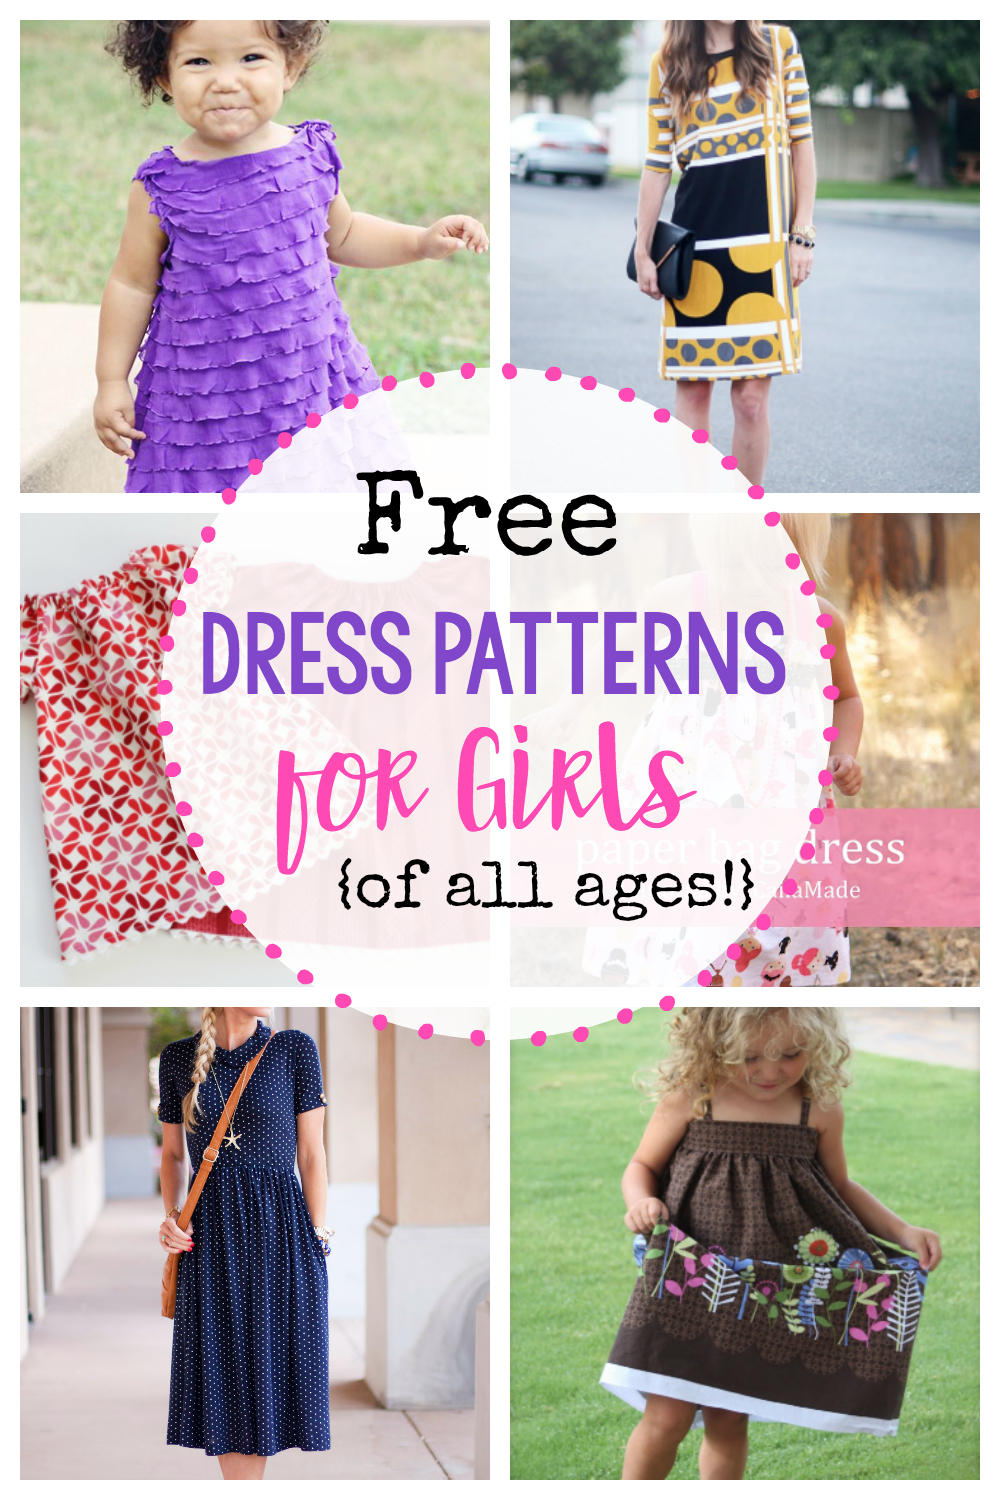 25 Free Dress Patterns For Girls {Of All Ages!} - Crazy Little Projects - Free Printable Sewing Patterns For Kids